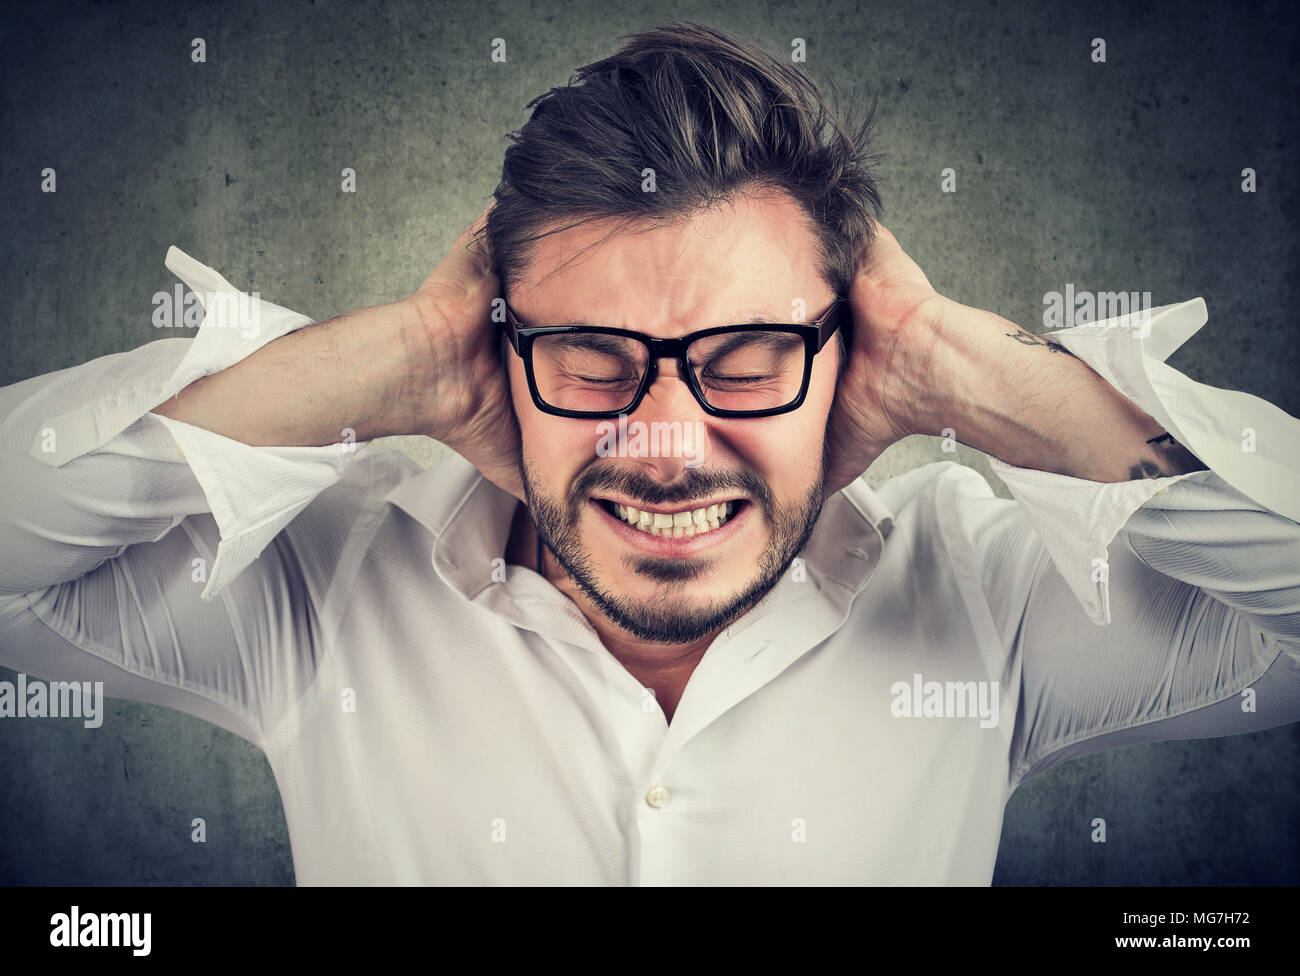 Frowning bearded man in glasses covering ears having hysteria and stress. - Stock Image